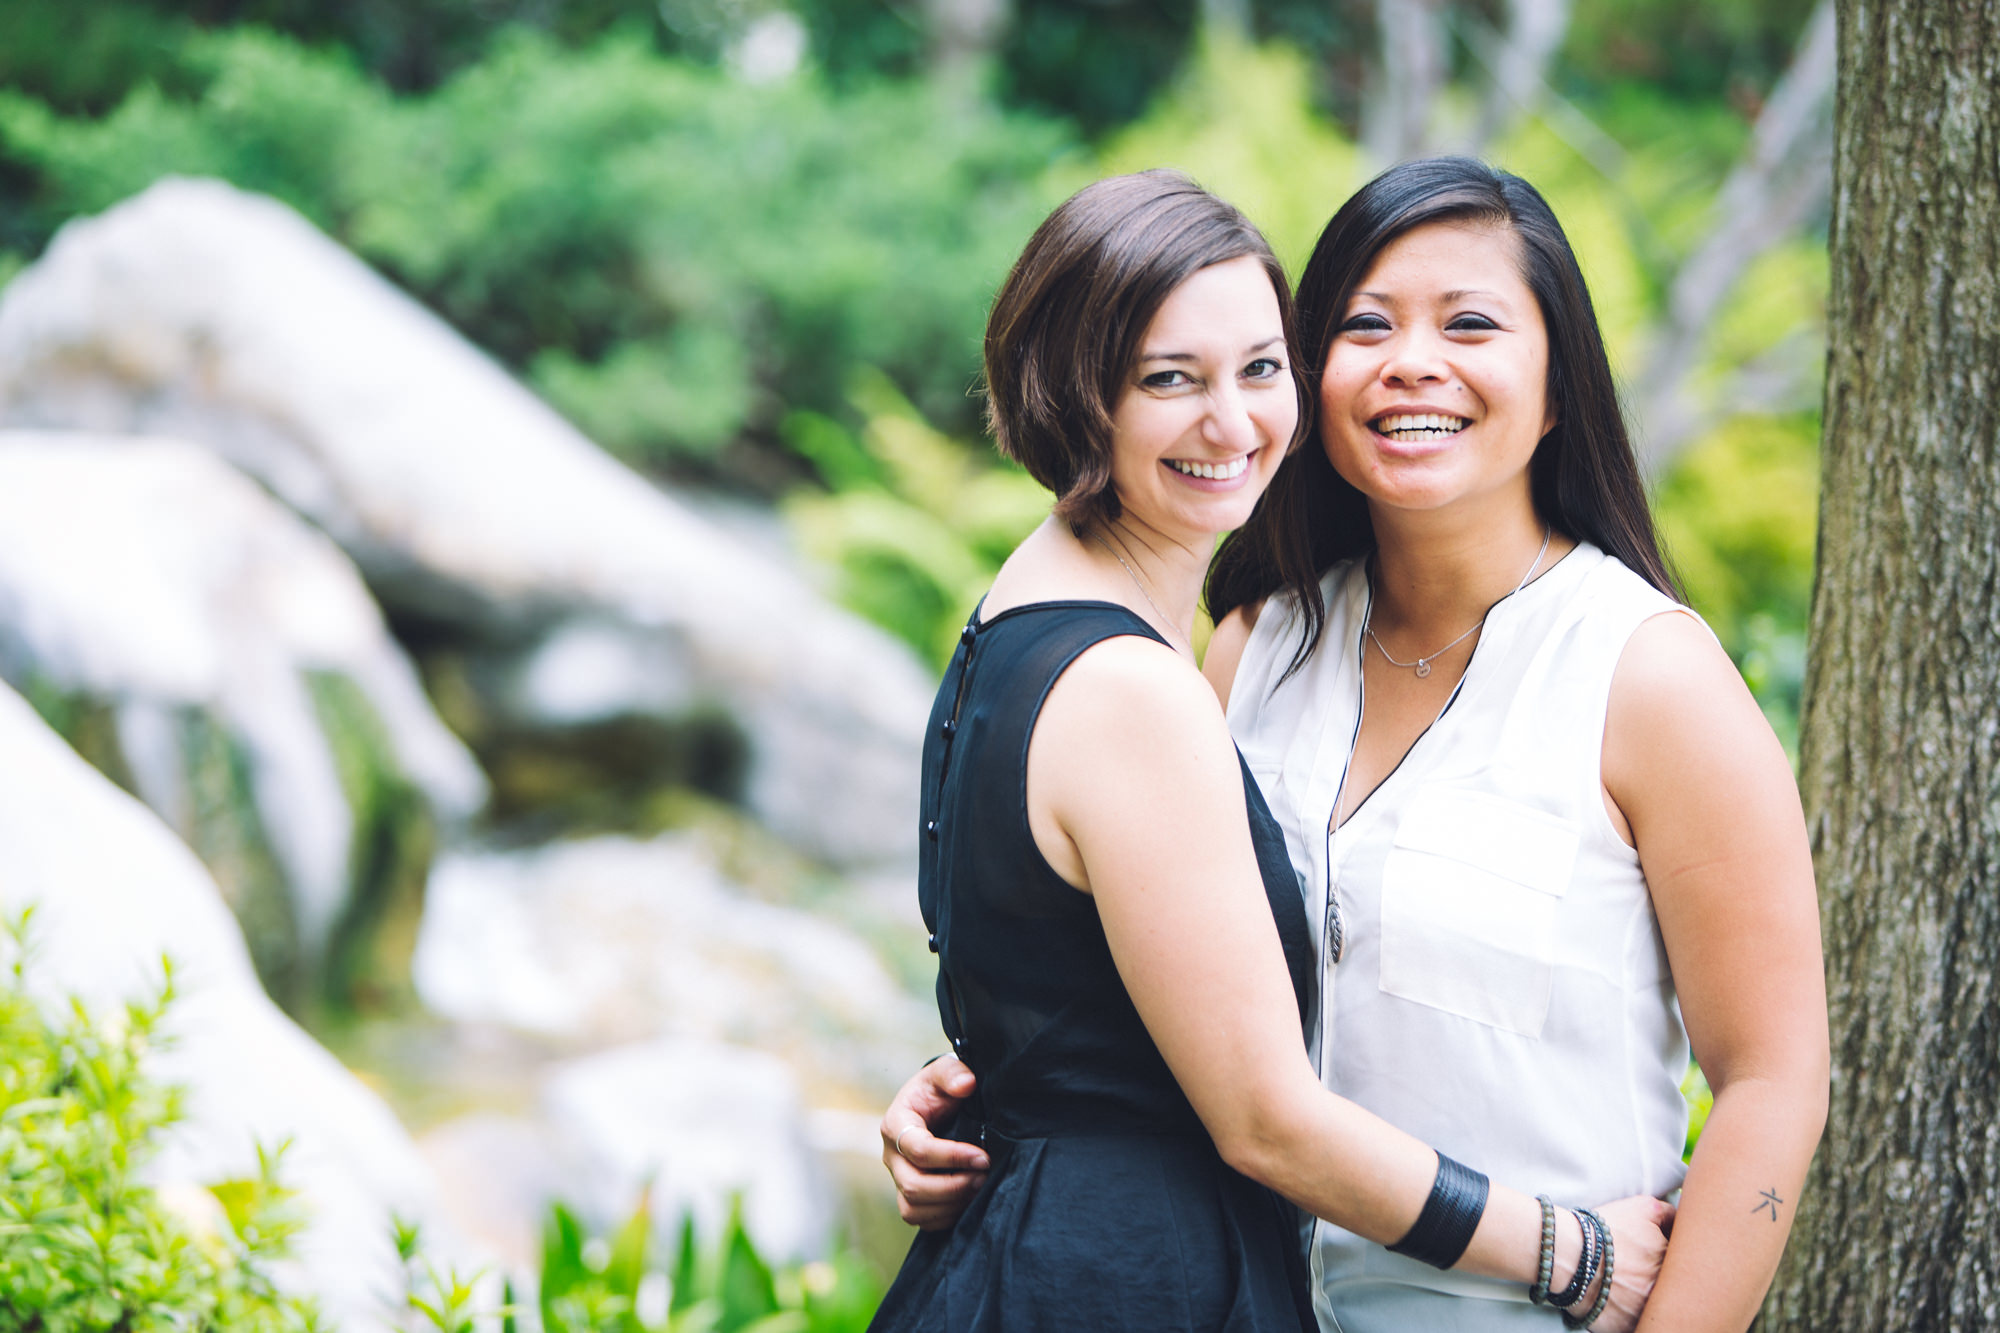 Dina_&_Stacy_Engagement_Photography_The_Light_&_Glass-010.jpg